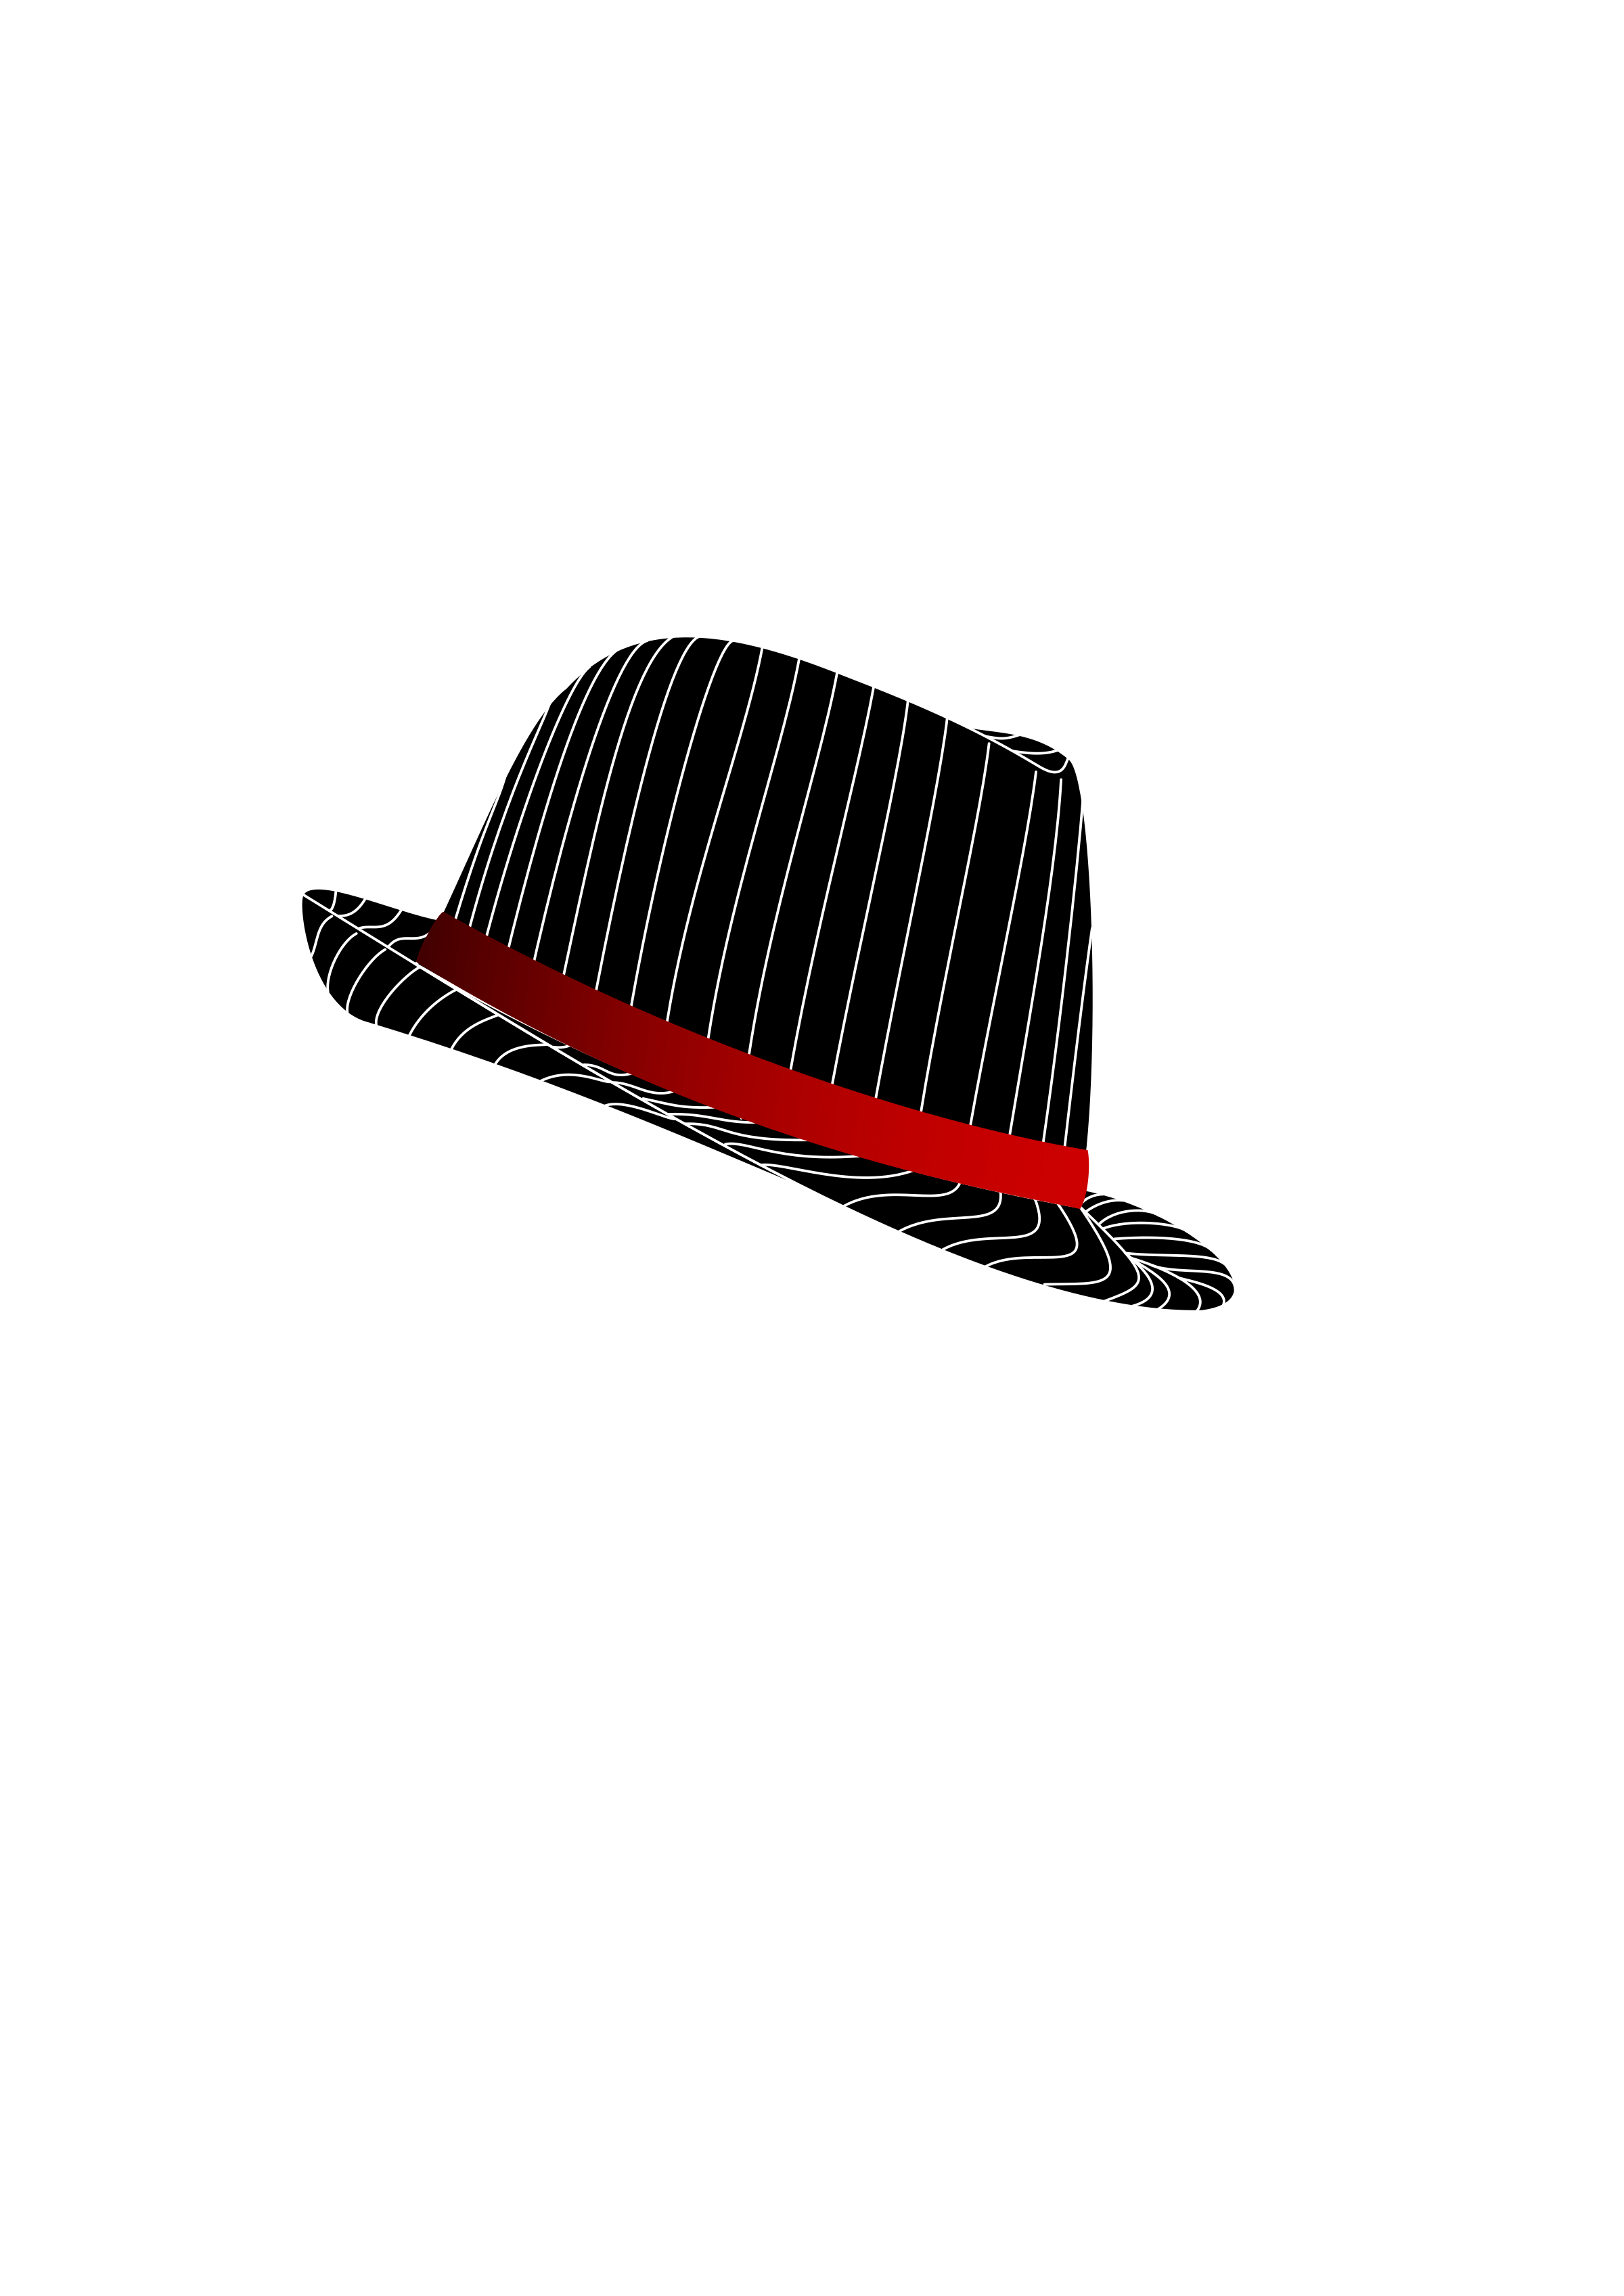 Big image png. Fedora clipart small hat